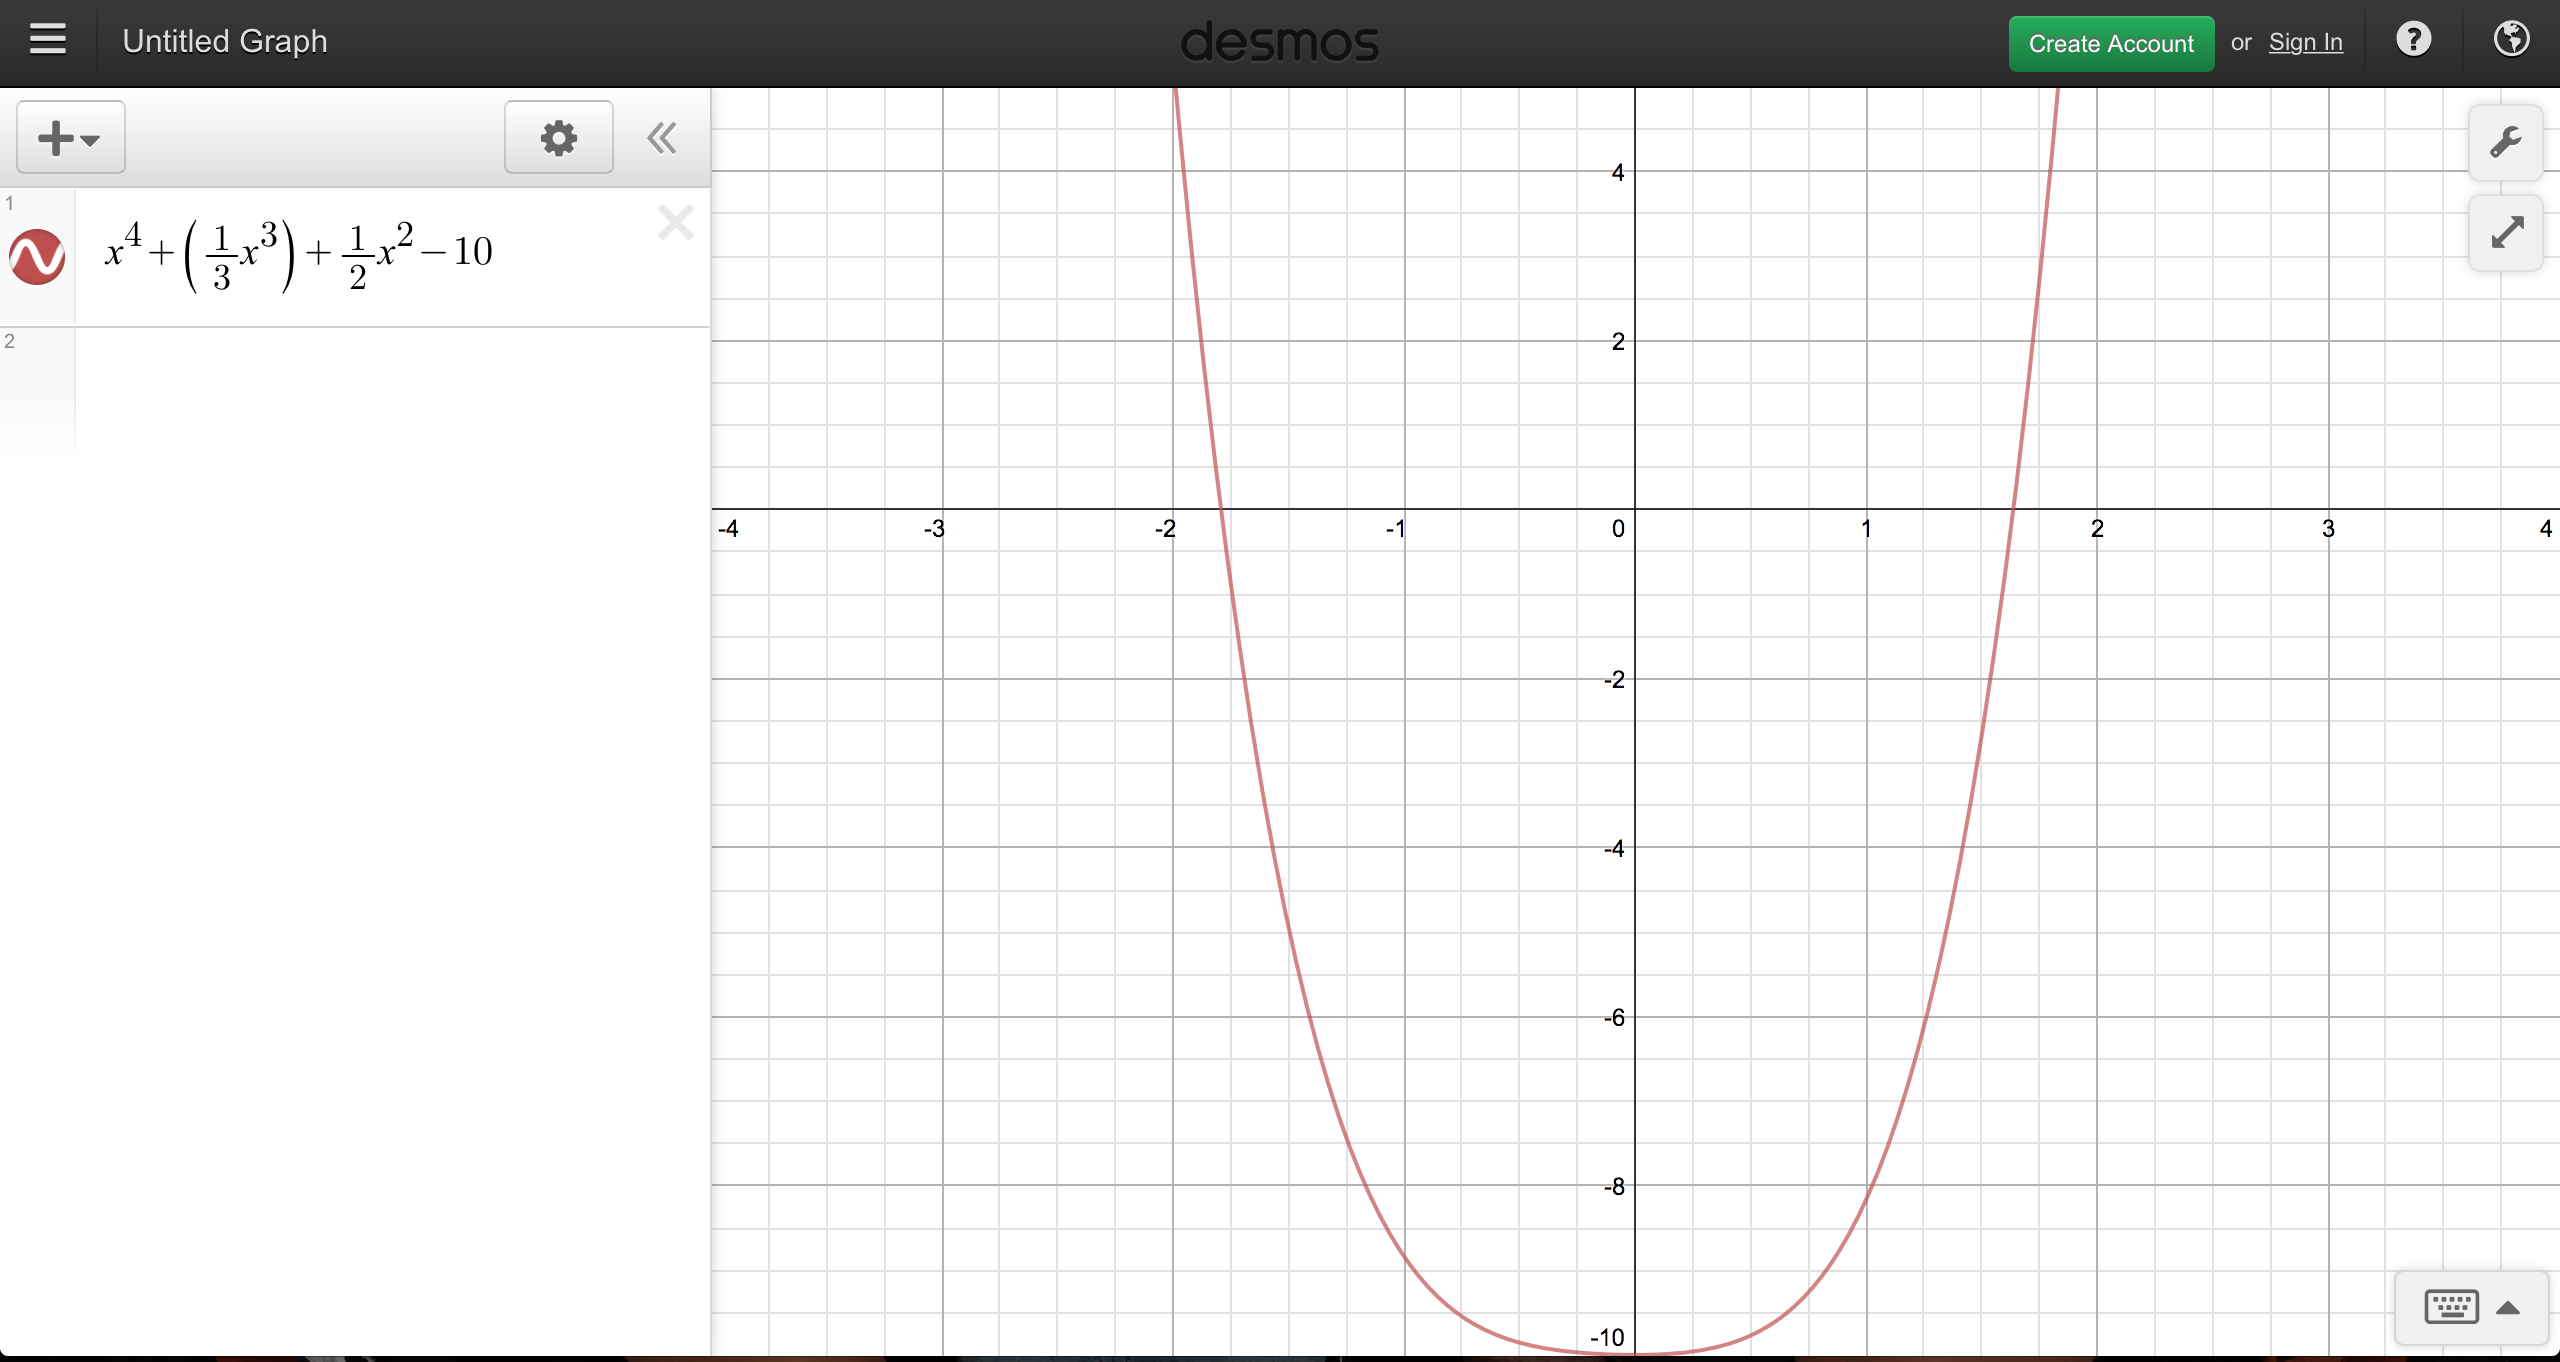 Graph of a polynomial function from https://www.desmos.com/calculator.